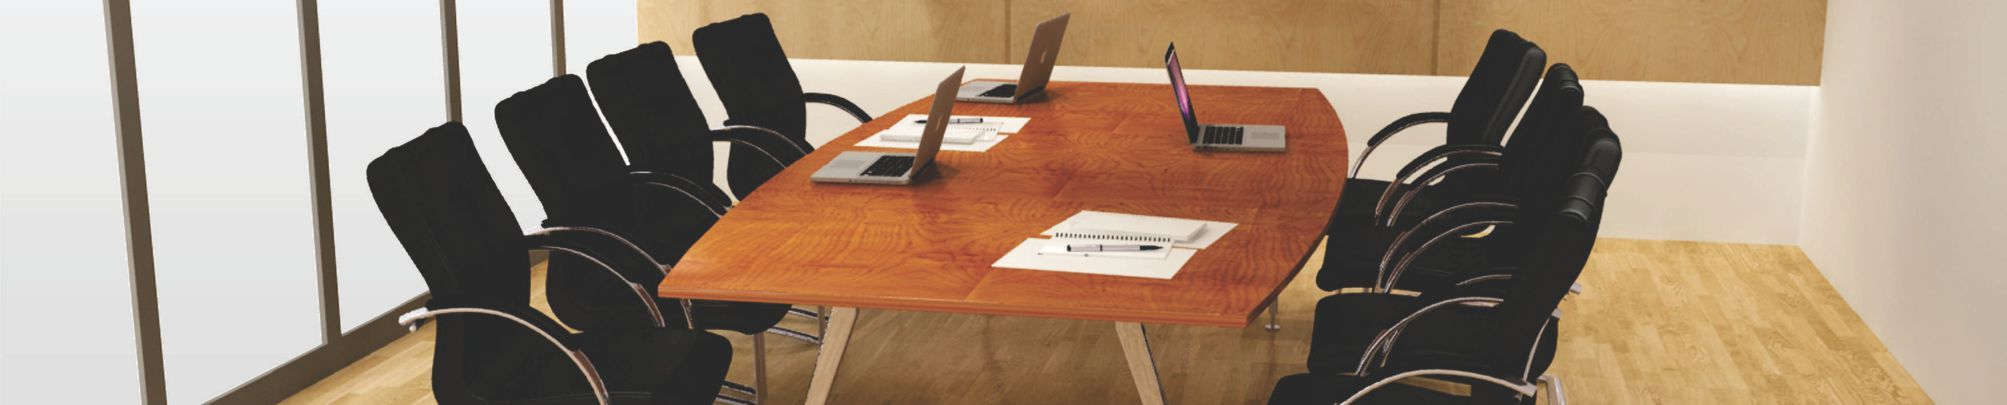 My Office Furniture Quality Affordable Office Furniture For Sale In Cape Town Desks Cha Office Furniture Sale Affordable Office Furniture Office Furniture